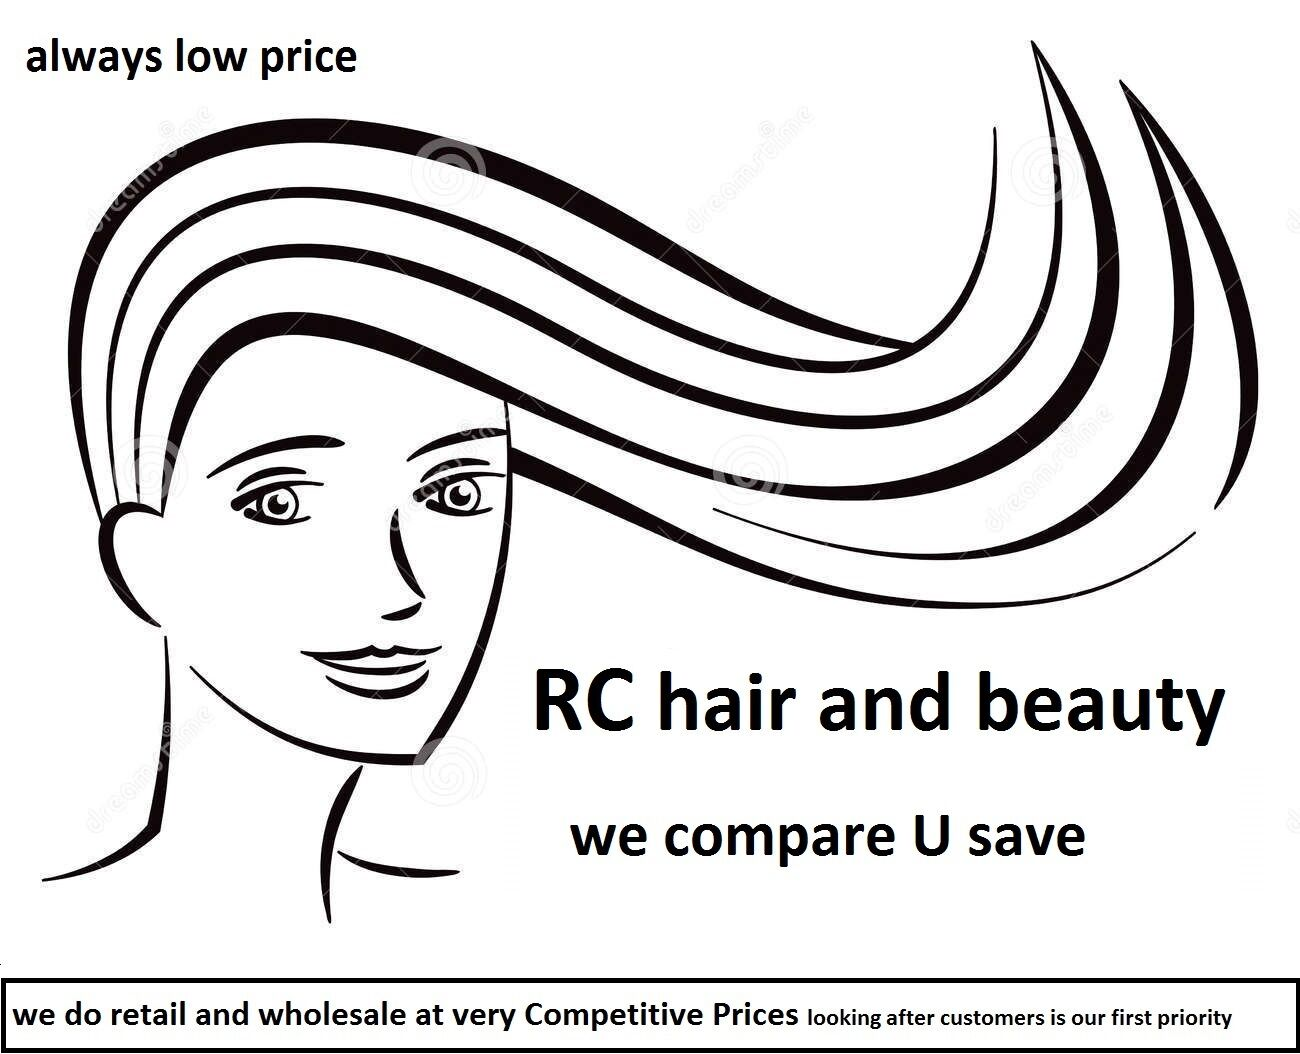 RC hair and beauty